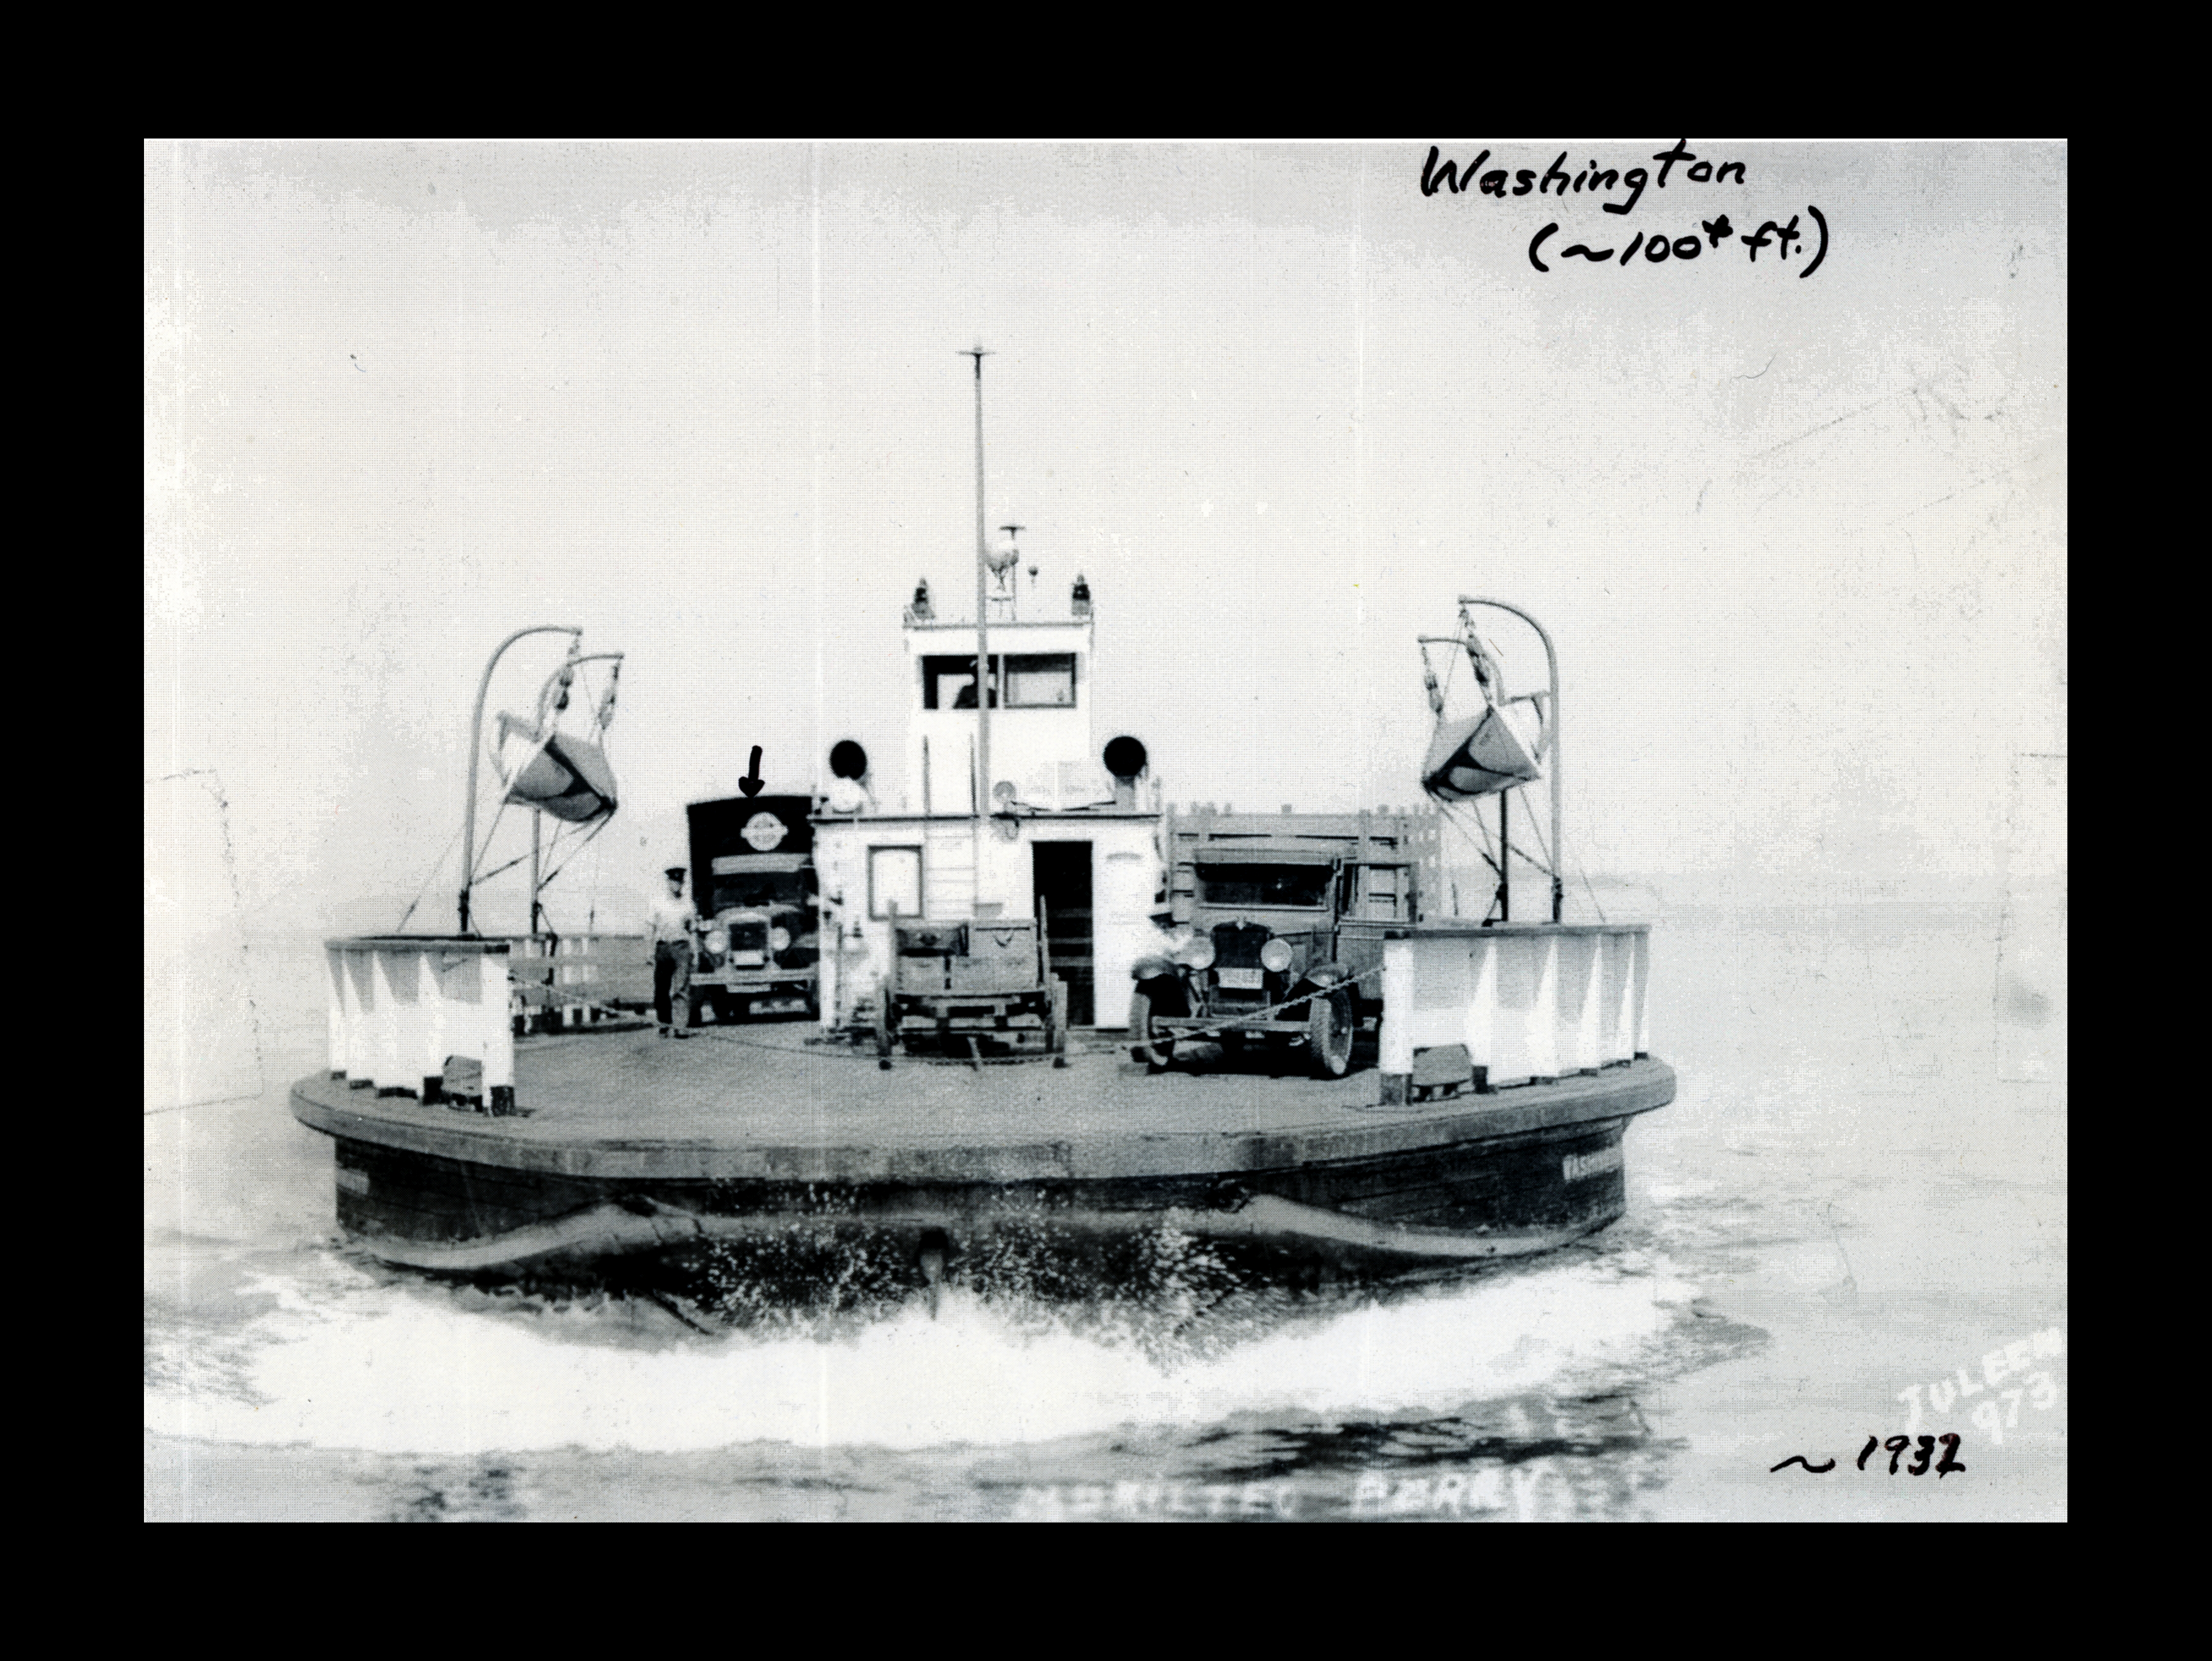 The Washington ferry boat did the run between Mukilteo and Clinton. 1932.